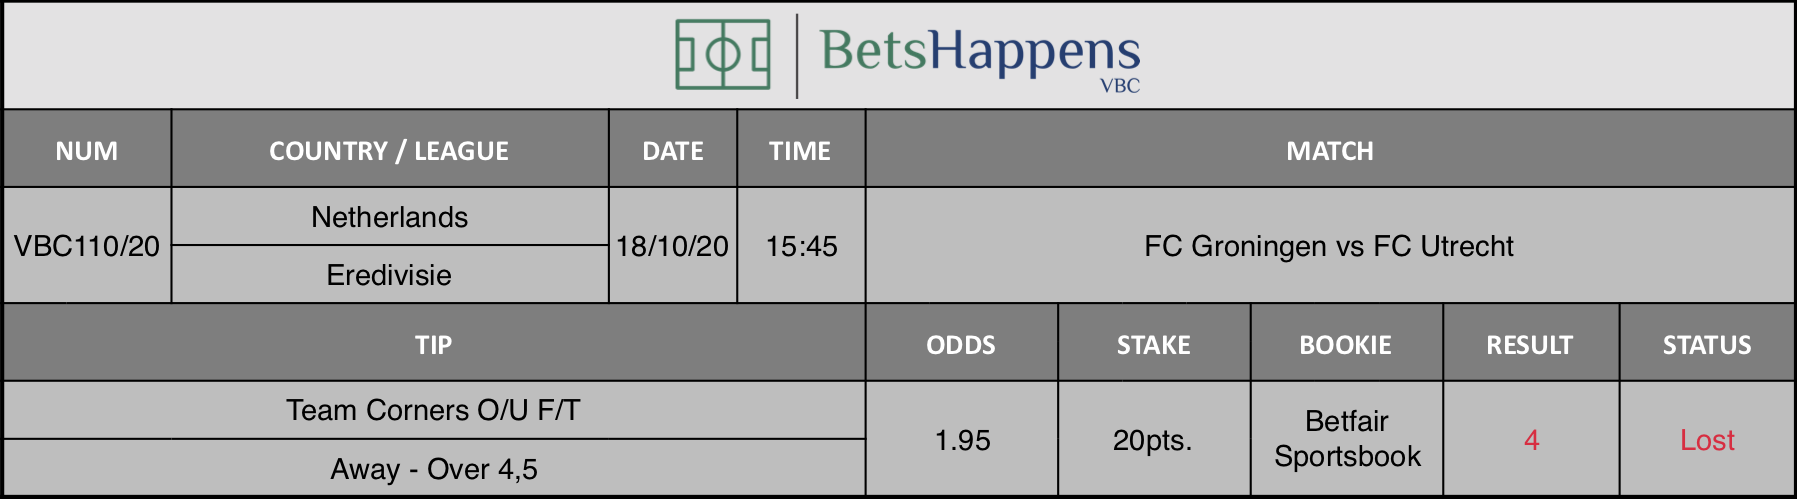 Results of our advice for the FC Groningen vs FC Utrecht match in which Team Corners O / U F / T Away Over 4,5 is recommended.